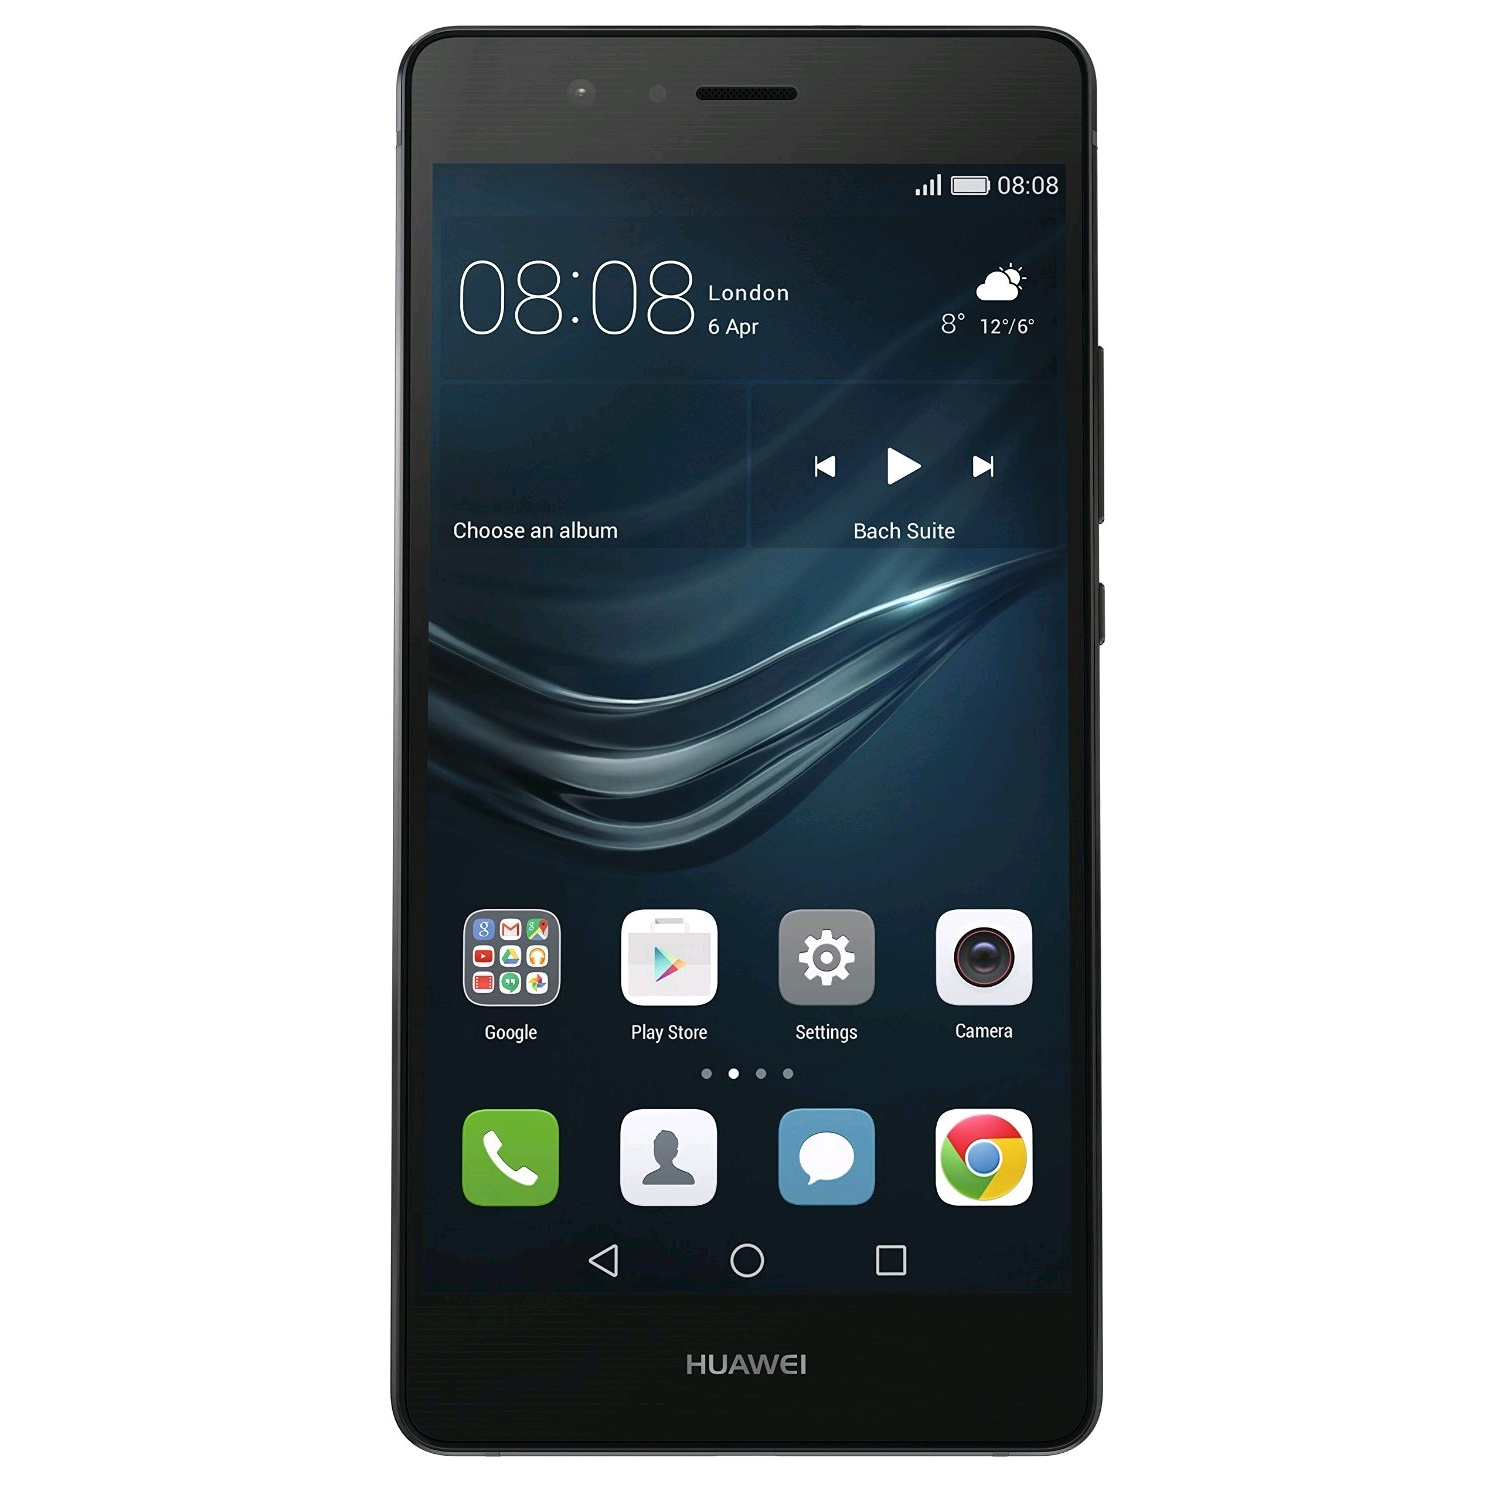 huawei p9 lite dual sim local price in bangladesh 2018. Black Bedroom Furniture Sets. Home Design Ideas